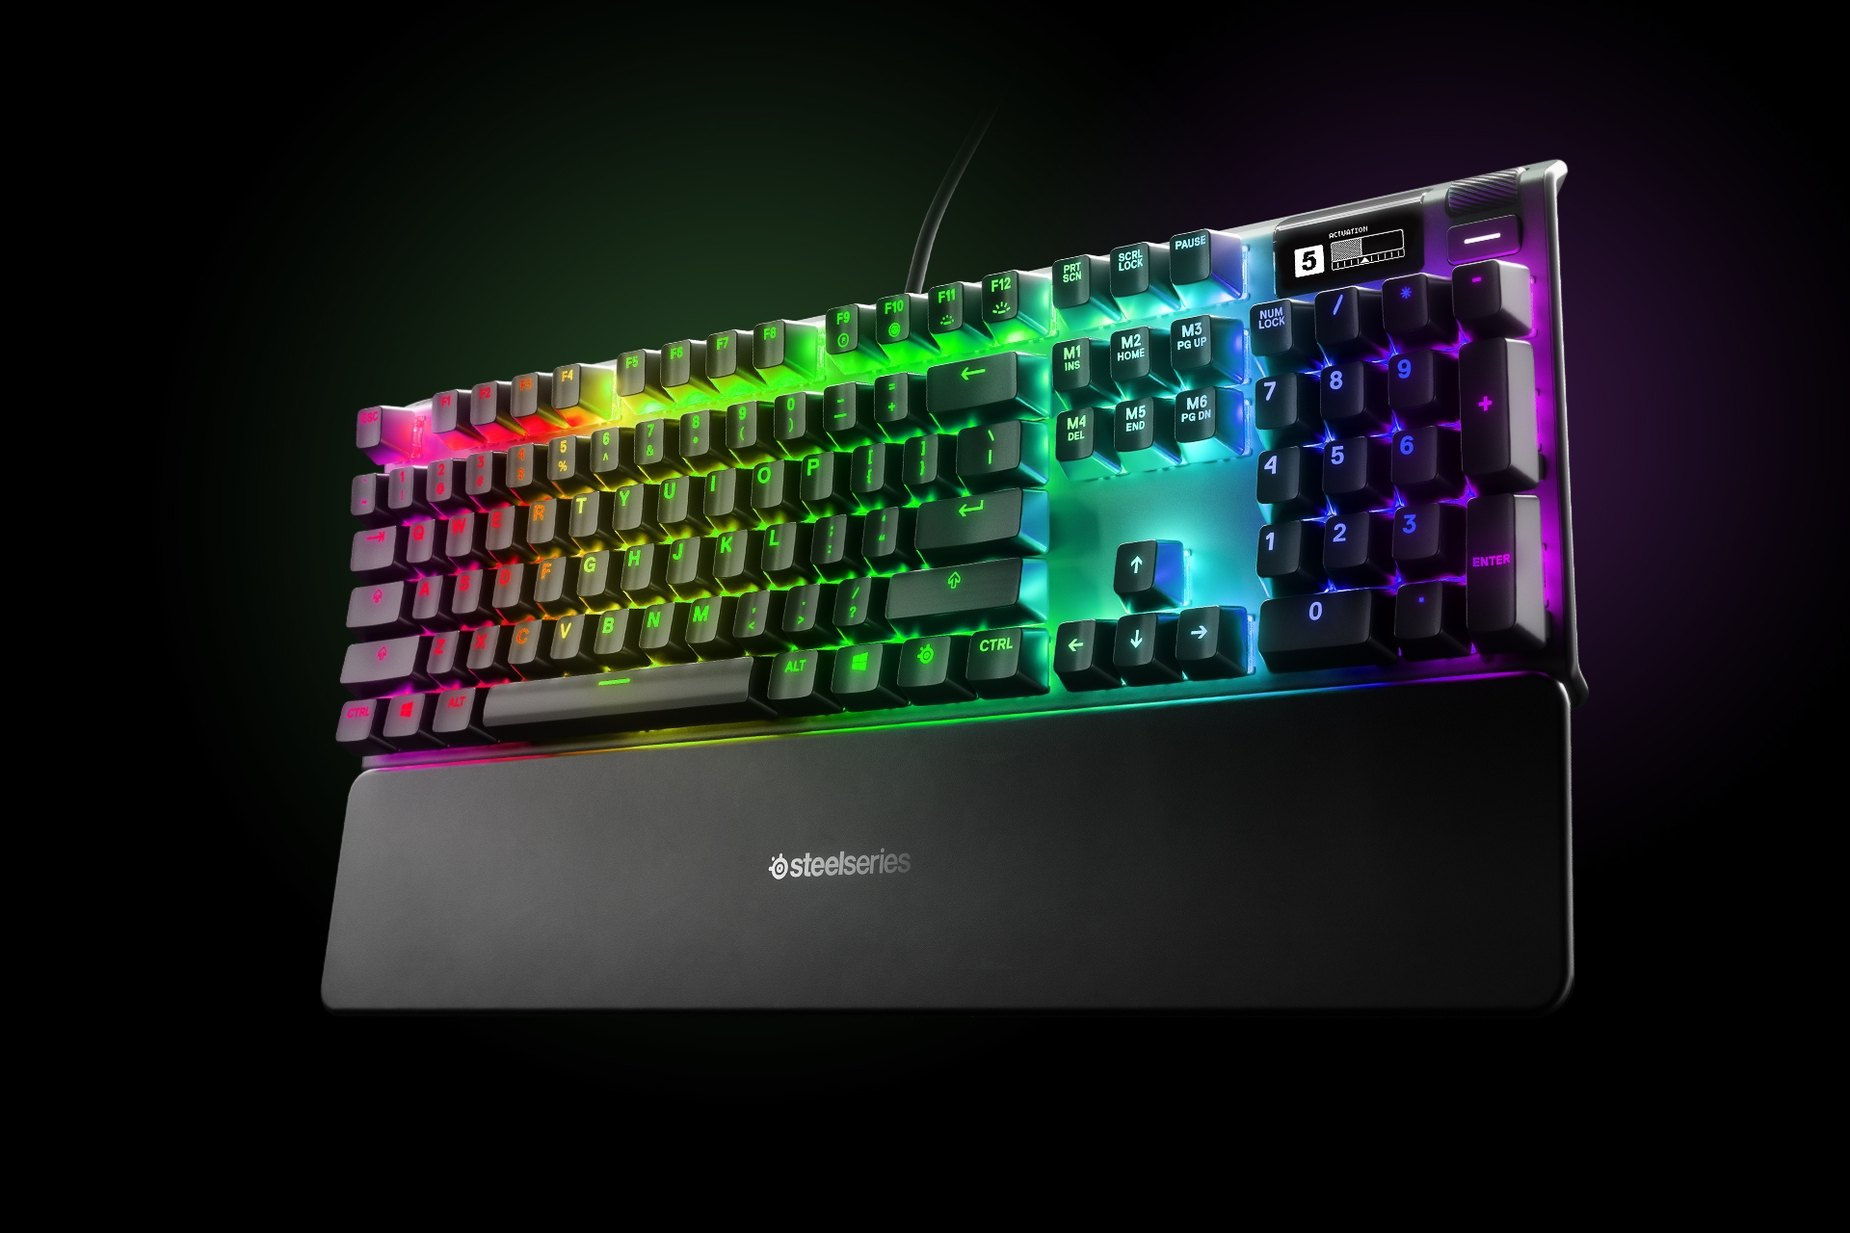 French - Apex Pro gaming keyboard with the illumination lit up on dark background, also shows the OLED screen and controls used to change settings, switch actuation, and adjust audio